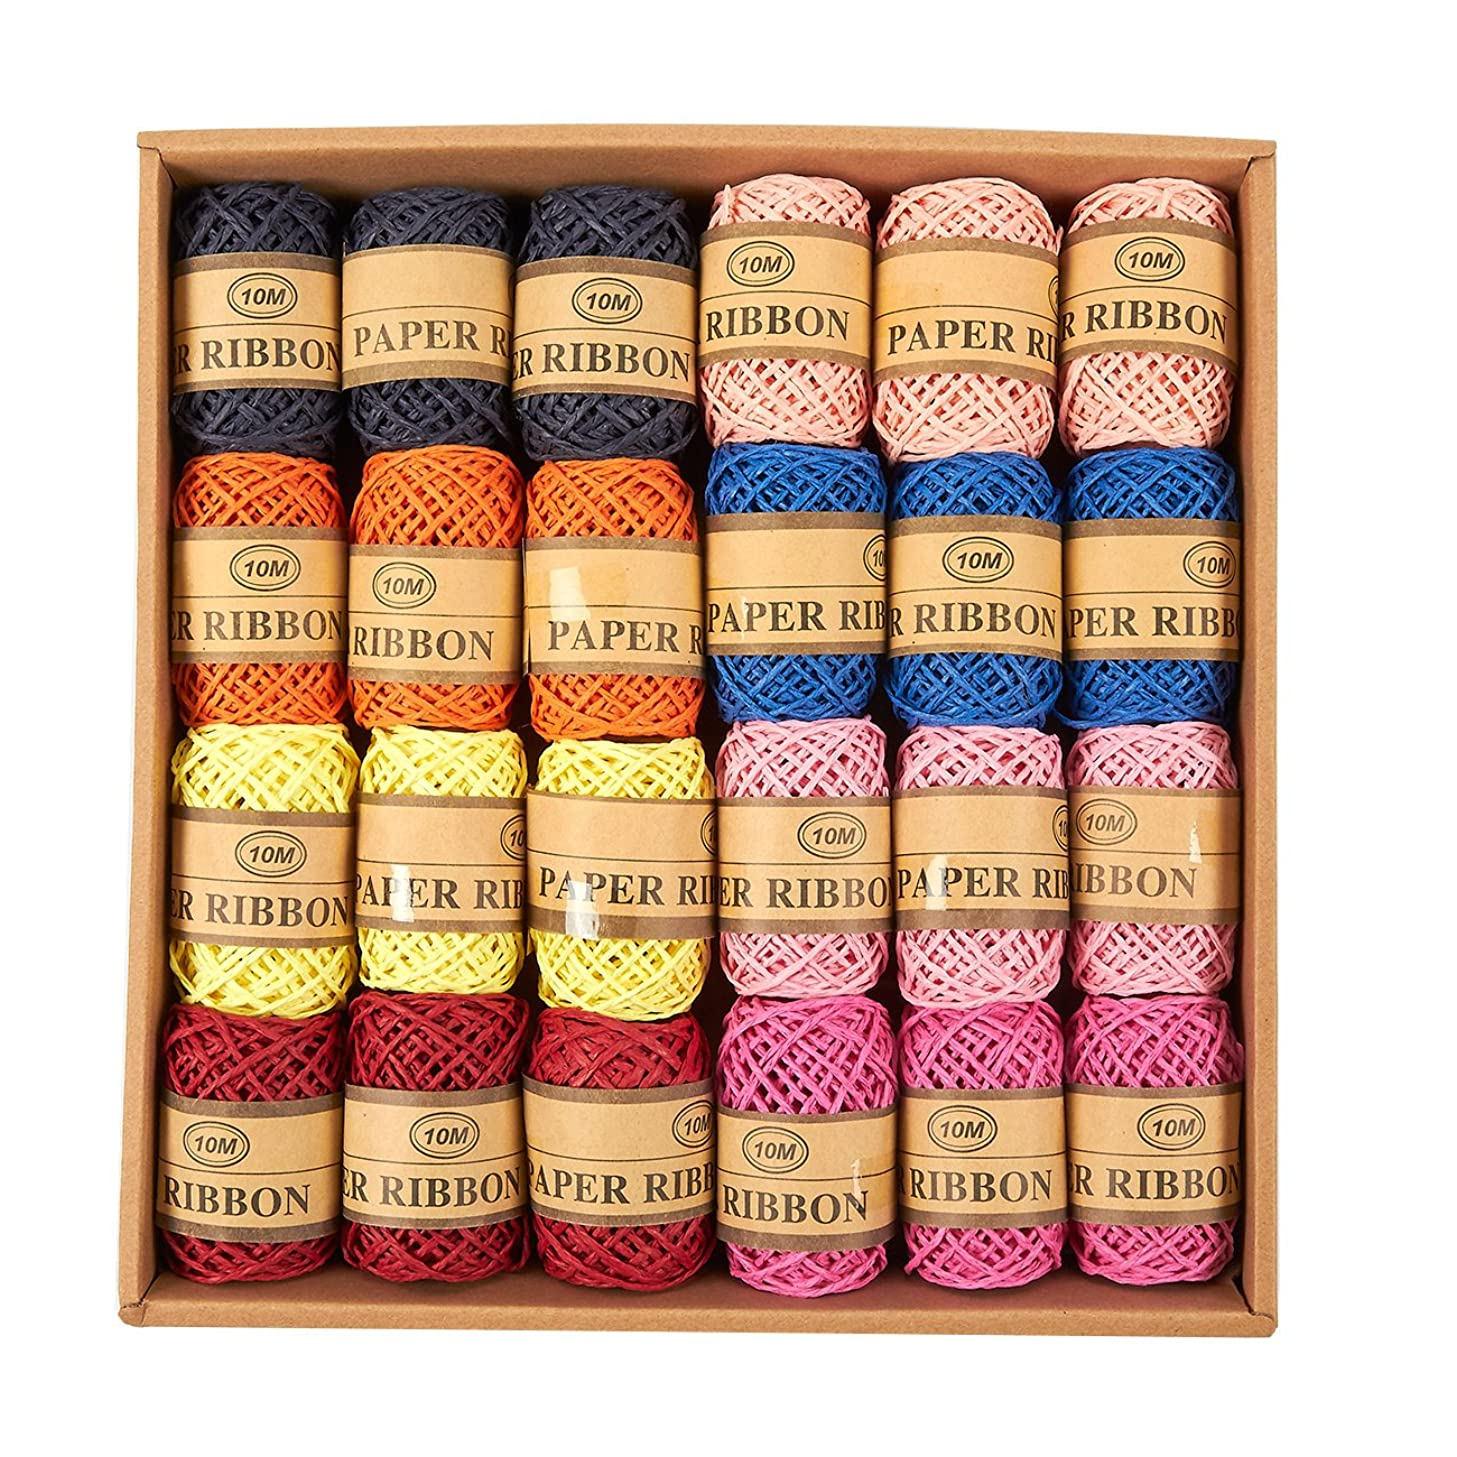 Raffia Ribbon - 24-Pack Paper Ribbon, Natural Raffia Twine String Ribbon for Craft, Packing, Wrapping Gifts, 8 Colors, 11-Yard Each